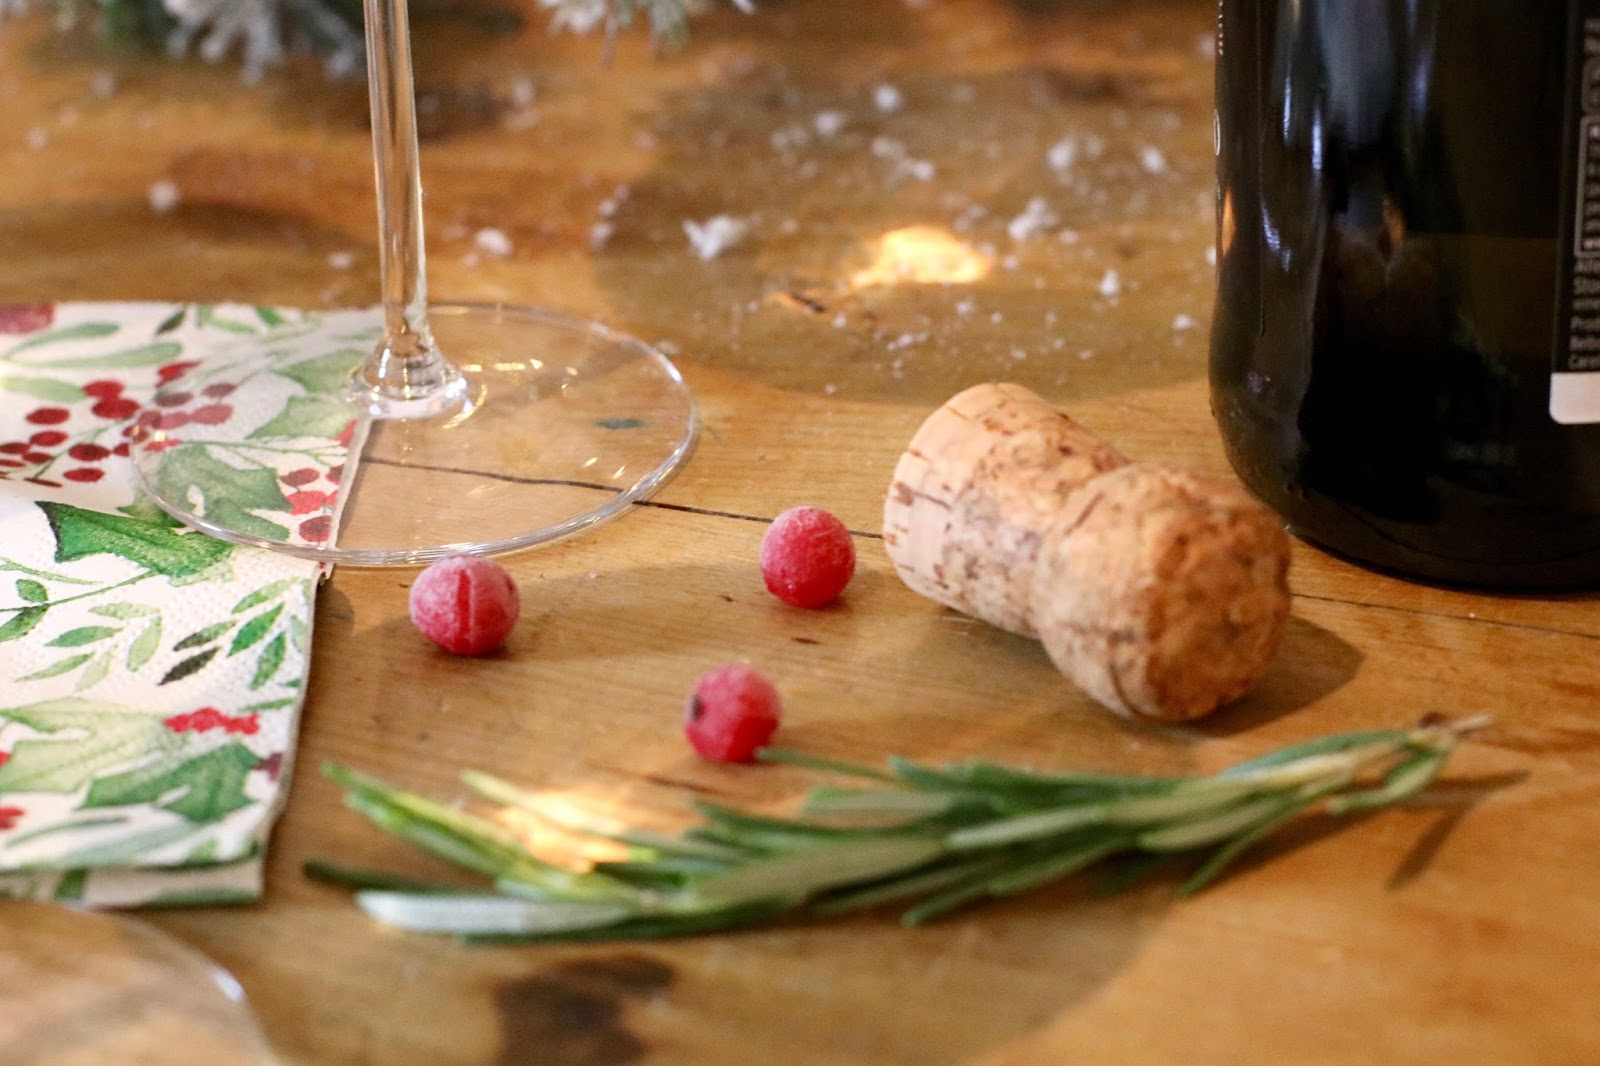 Festive-prosecco-Christmas-red-currants-rosemary-decor